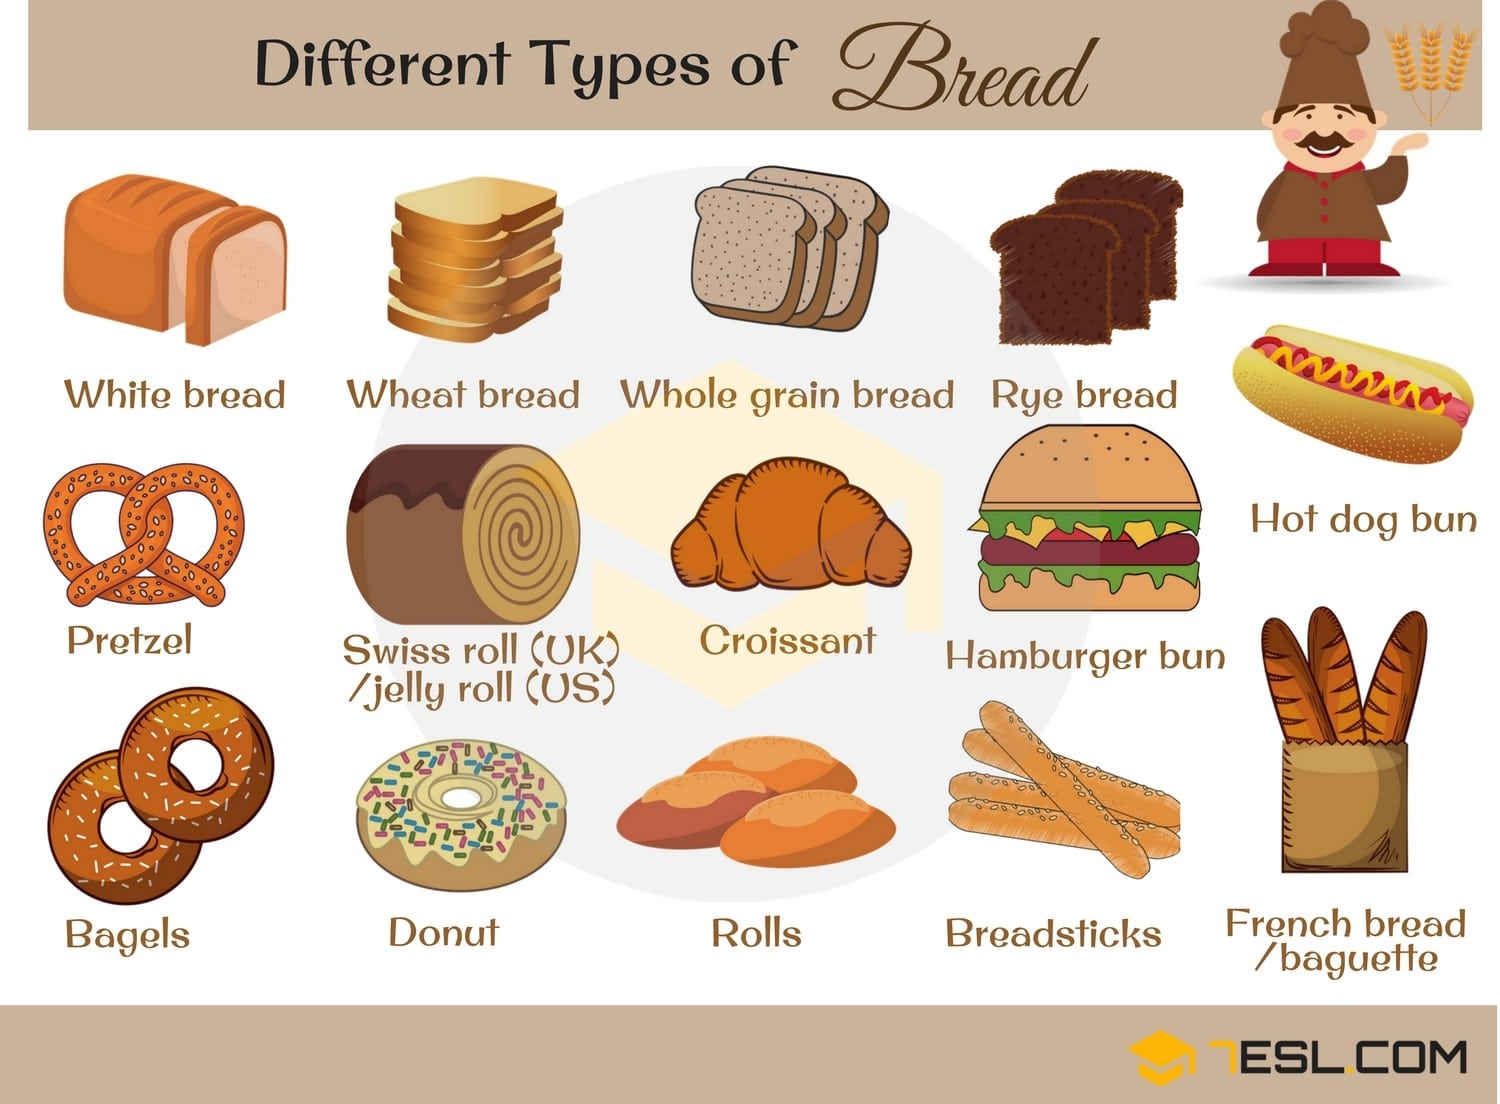 Different Types of Breads in English